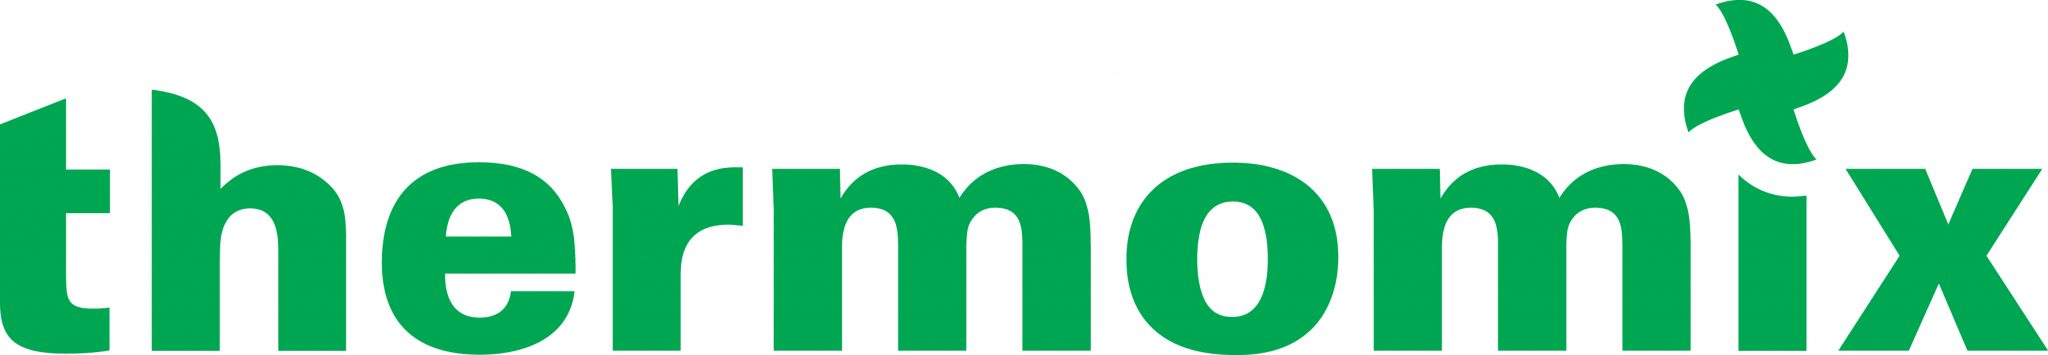 THERMOMIX-logo-jpeg1